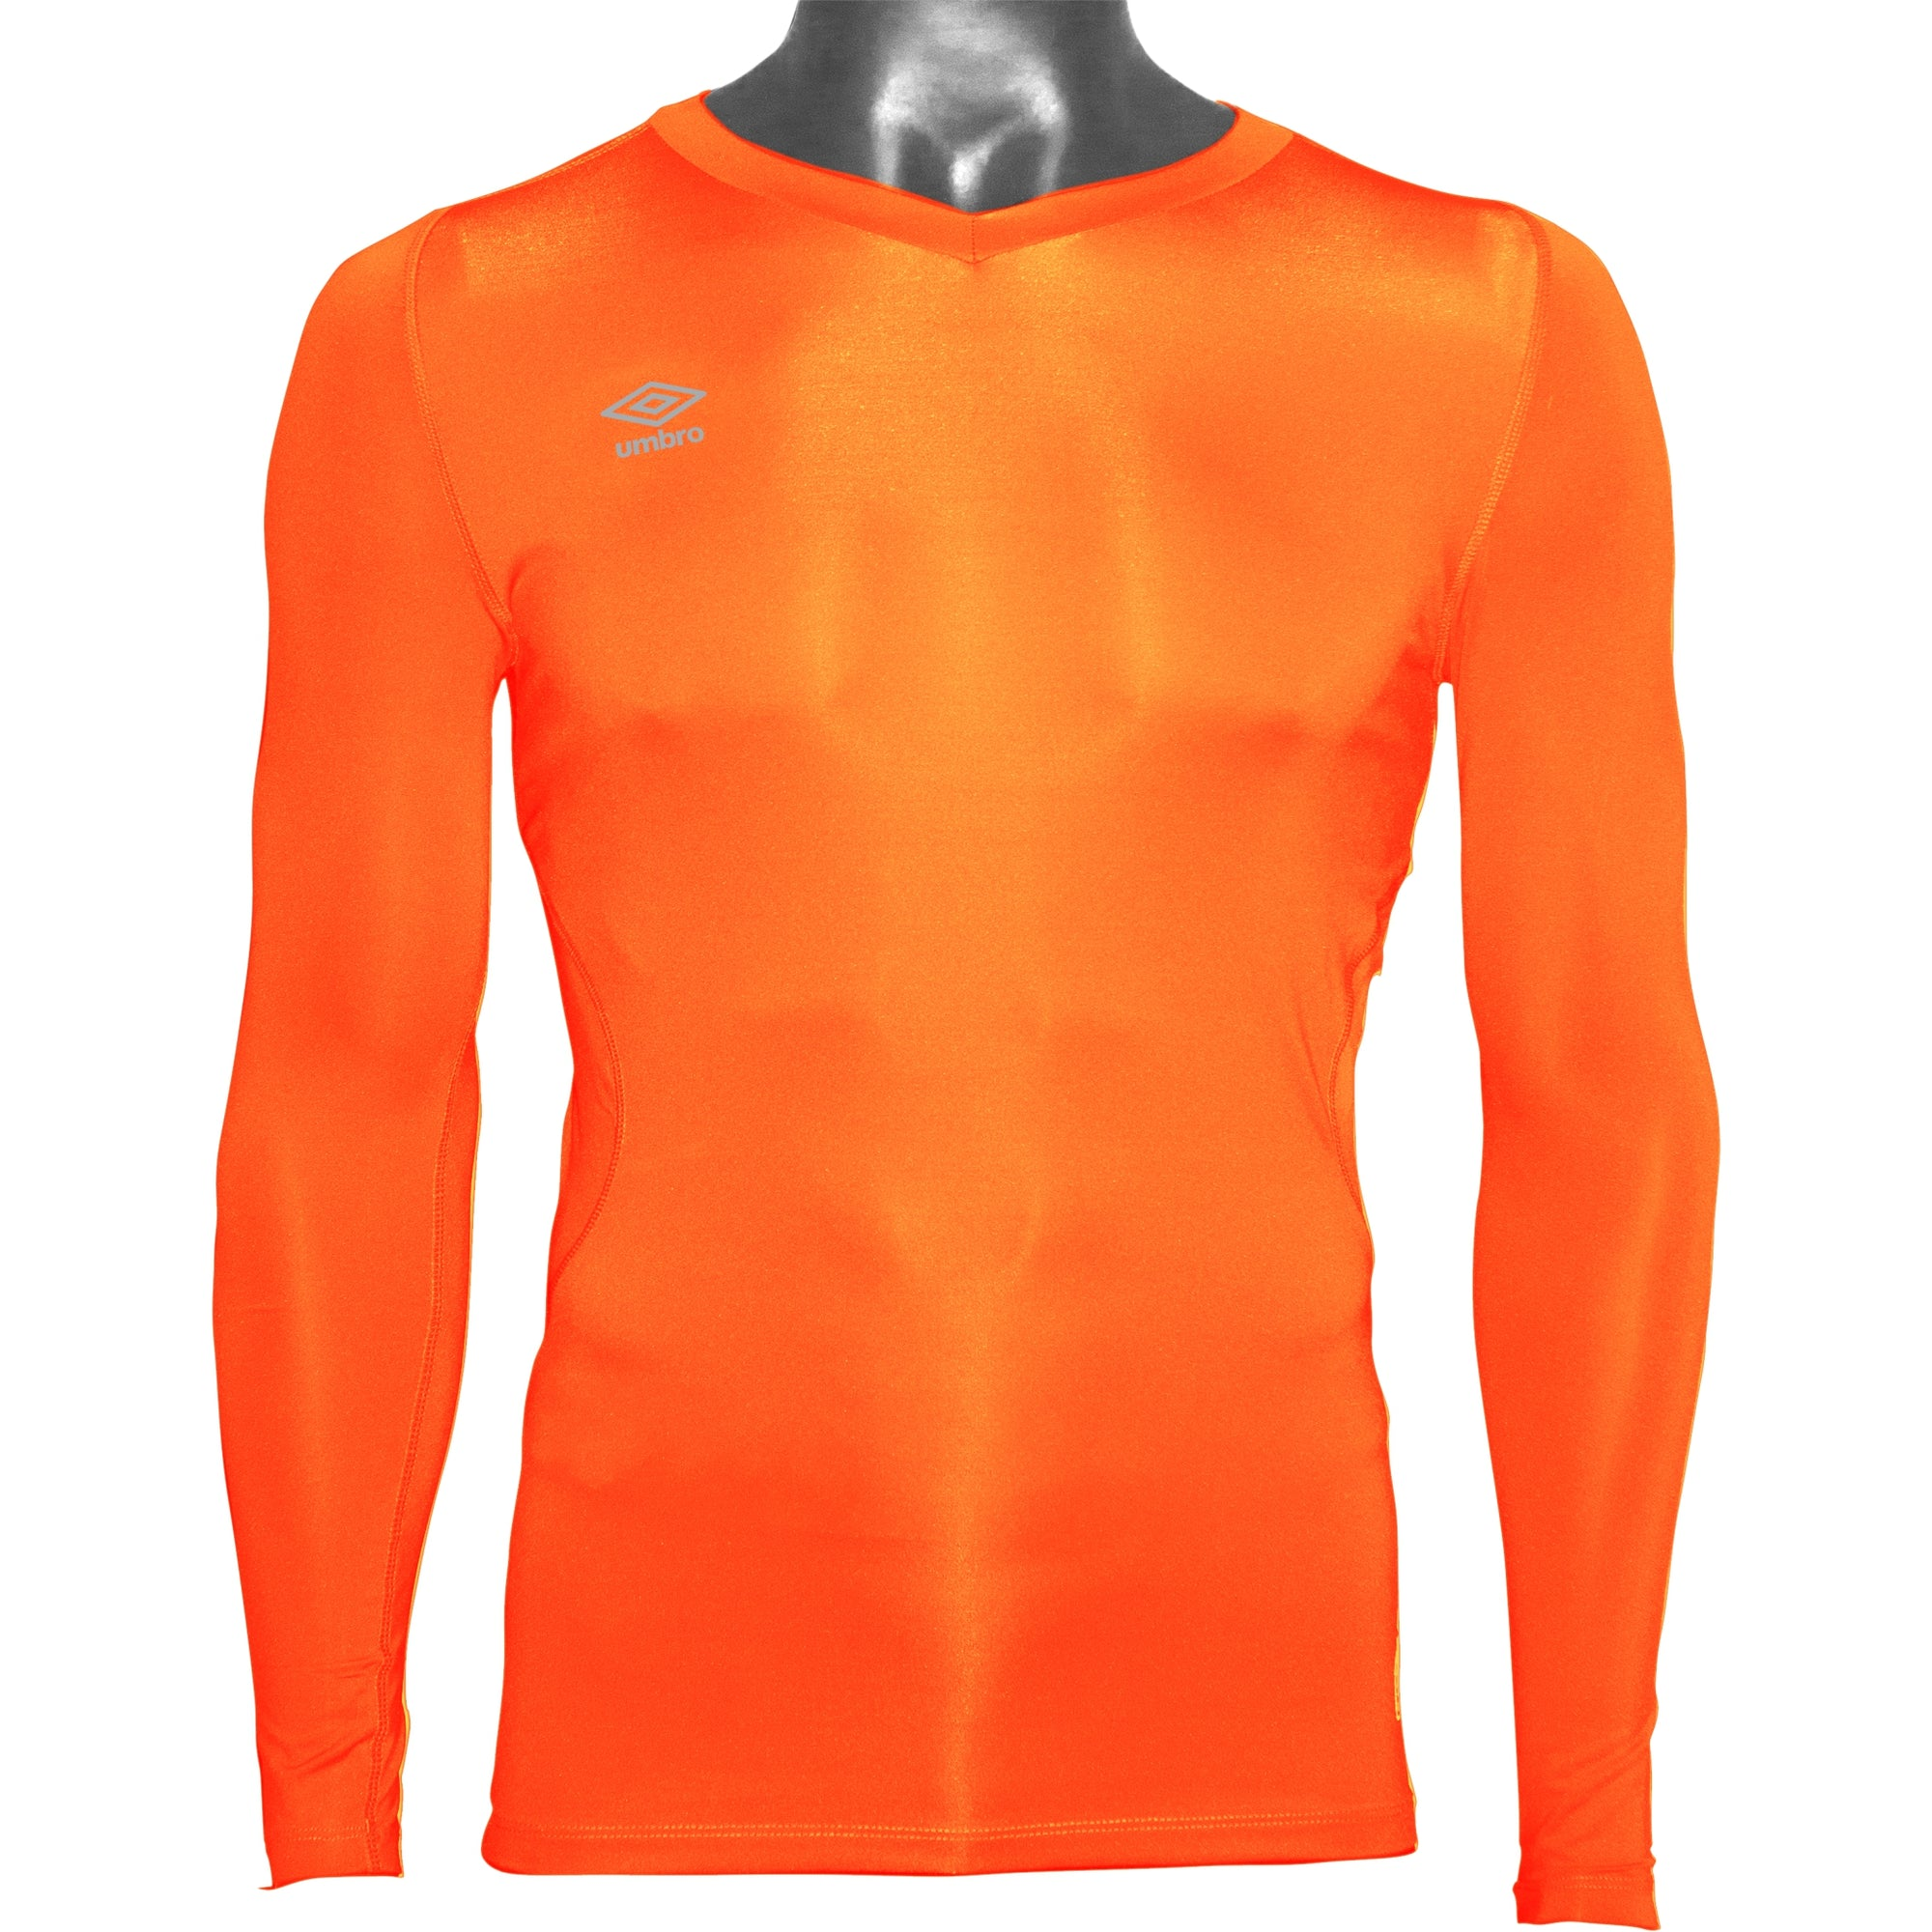 Umbro Elite V Neck Baselayer - Shocking Orange